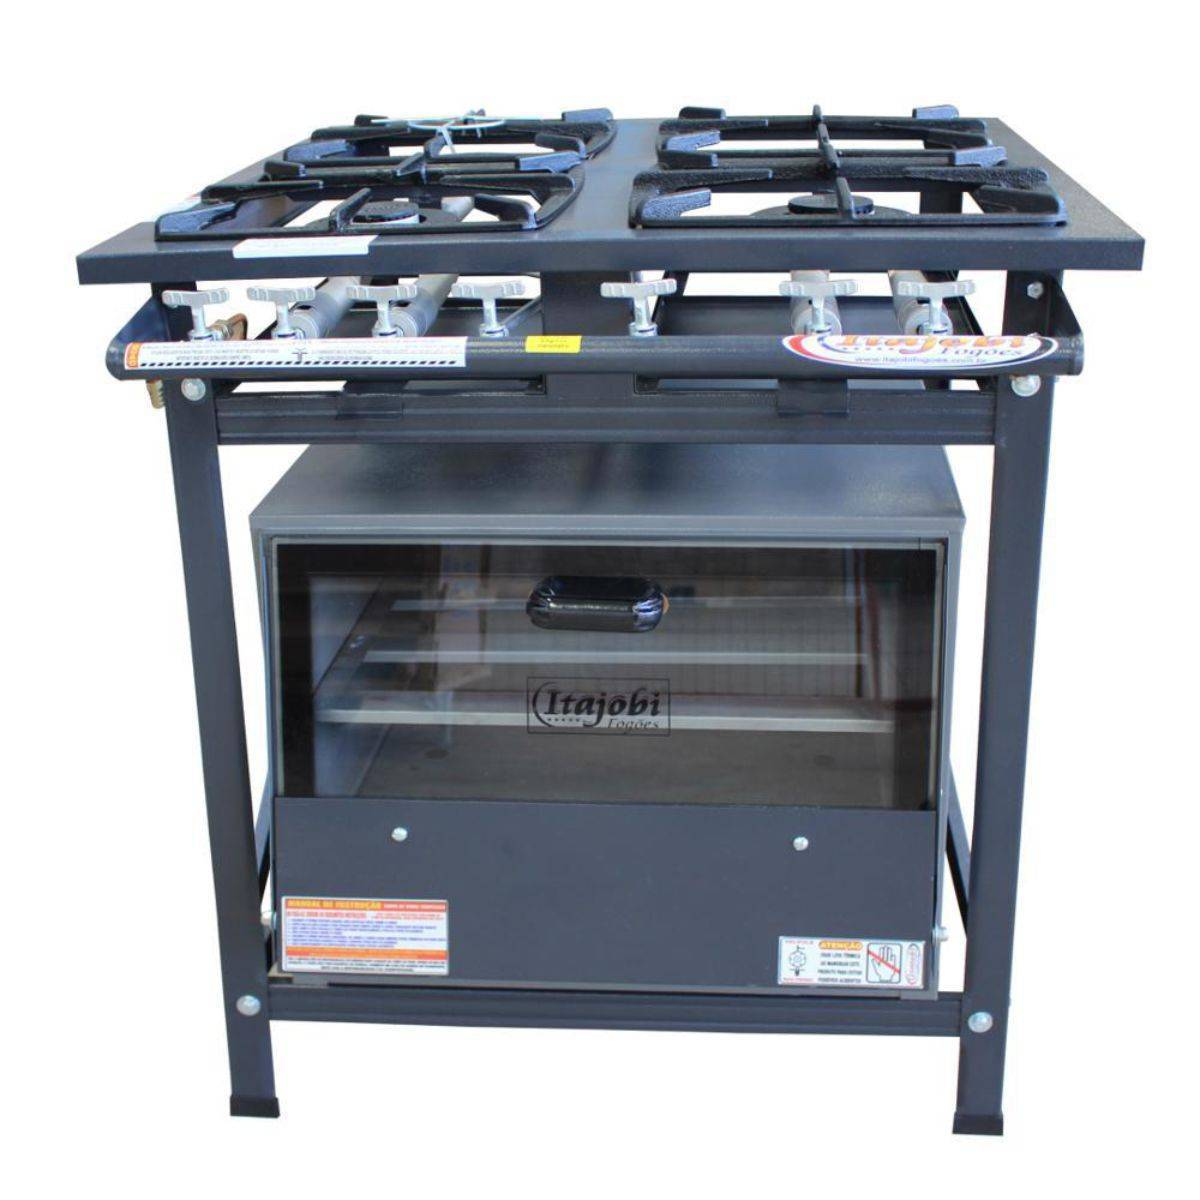 Fogão Industrial 4 Bocas 30x30 com Forno BP Itajobi - Magazine do Chef